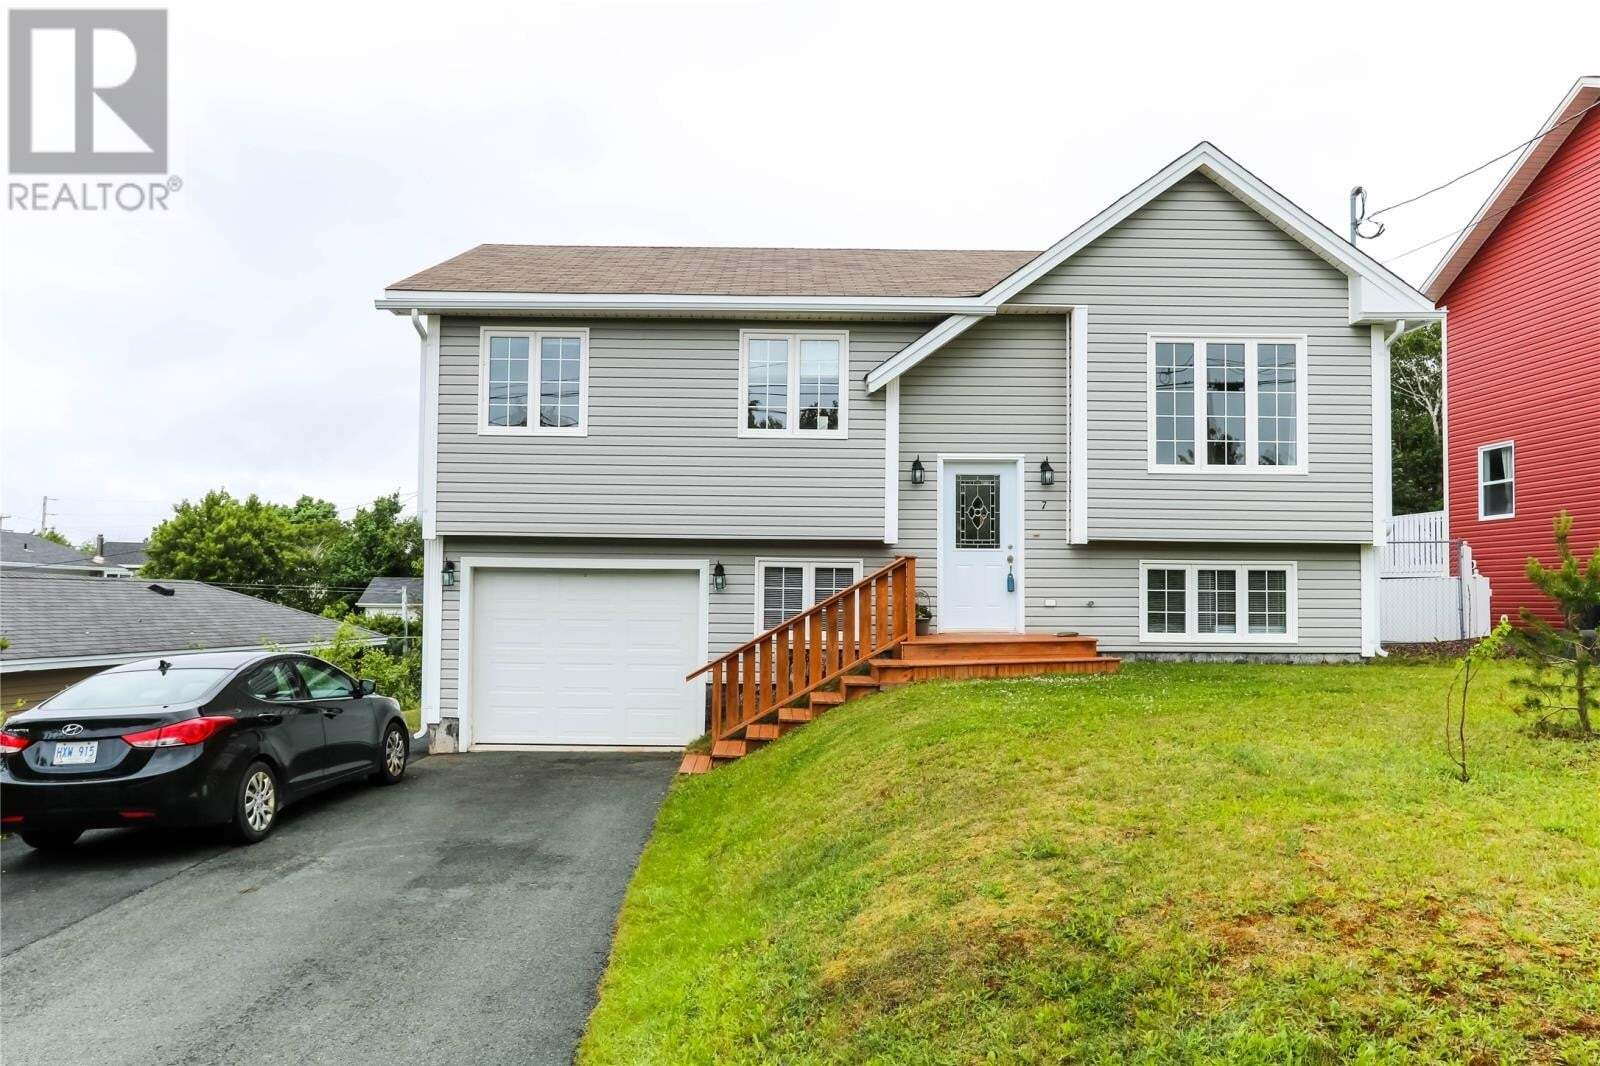 House for sale at 7 Upper Gullies Elementary Rd Conception Bay South Newfoundland - MLS: 1217026